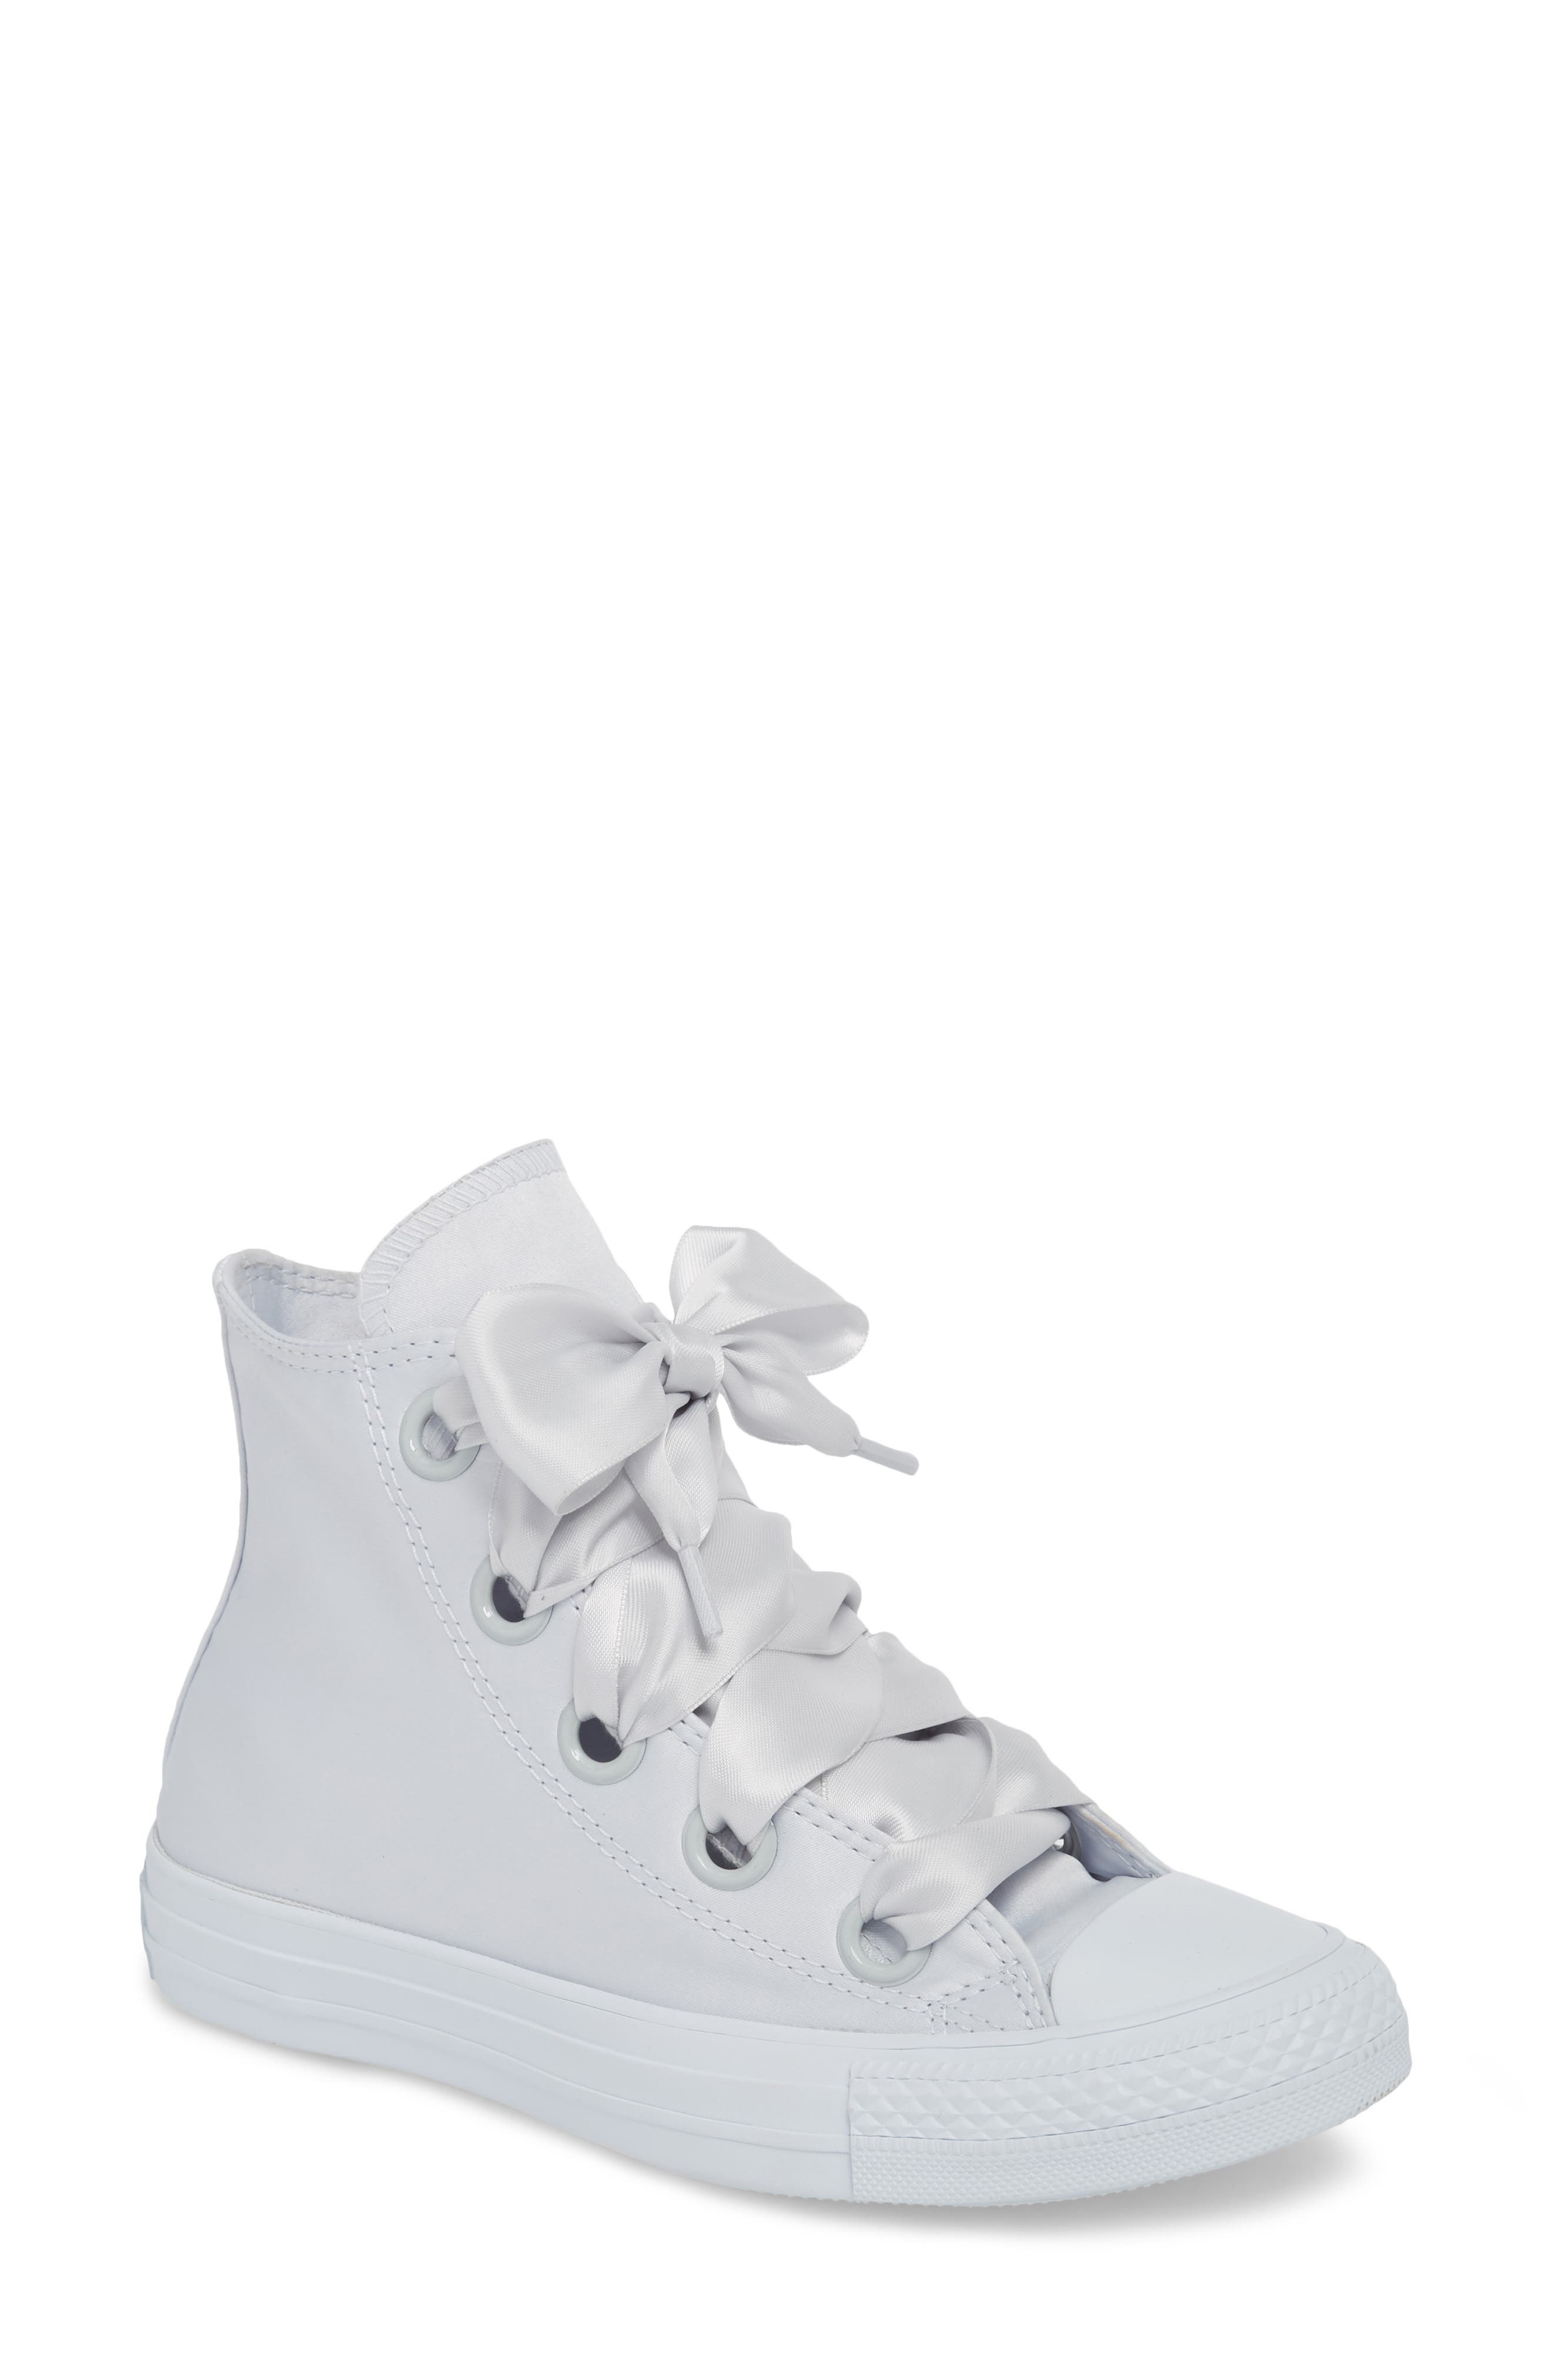 Chuck Taylor<sup>®</sup> All Star<sup>®</sup> Big Eyelet High Top Sneaker,                         Main,                         color, 040